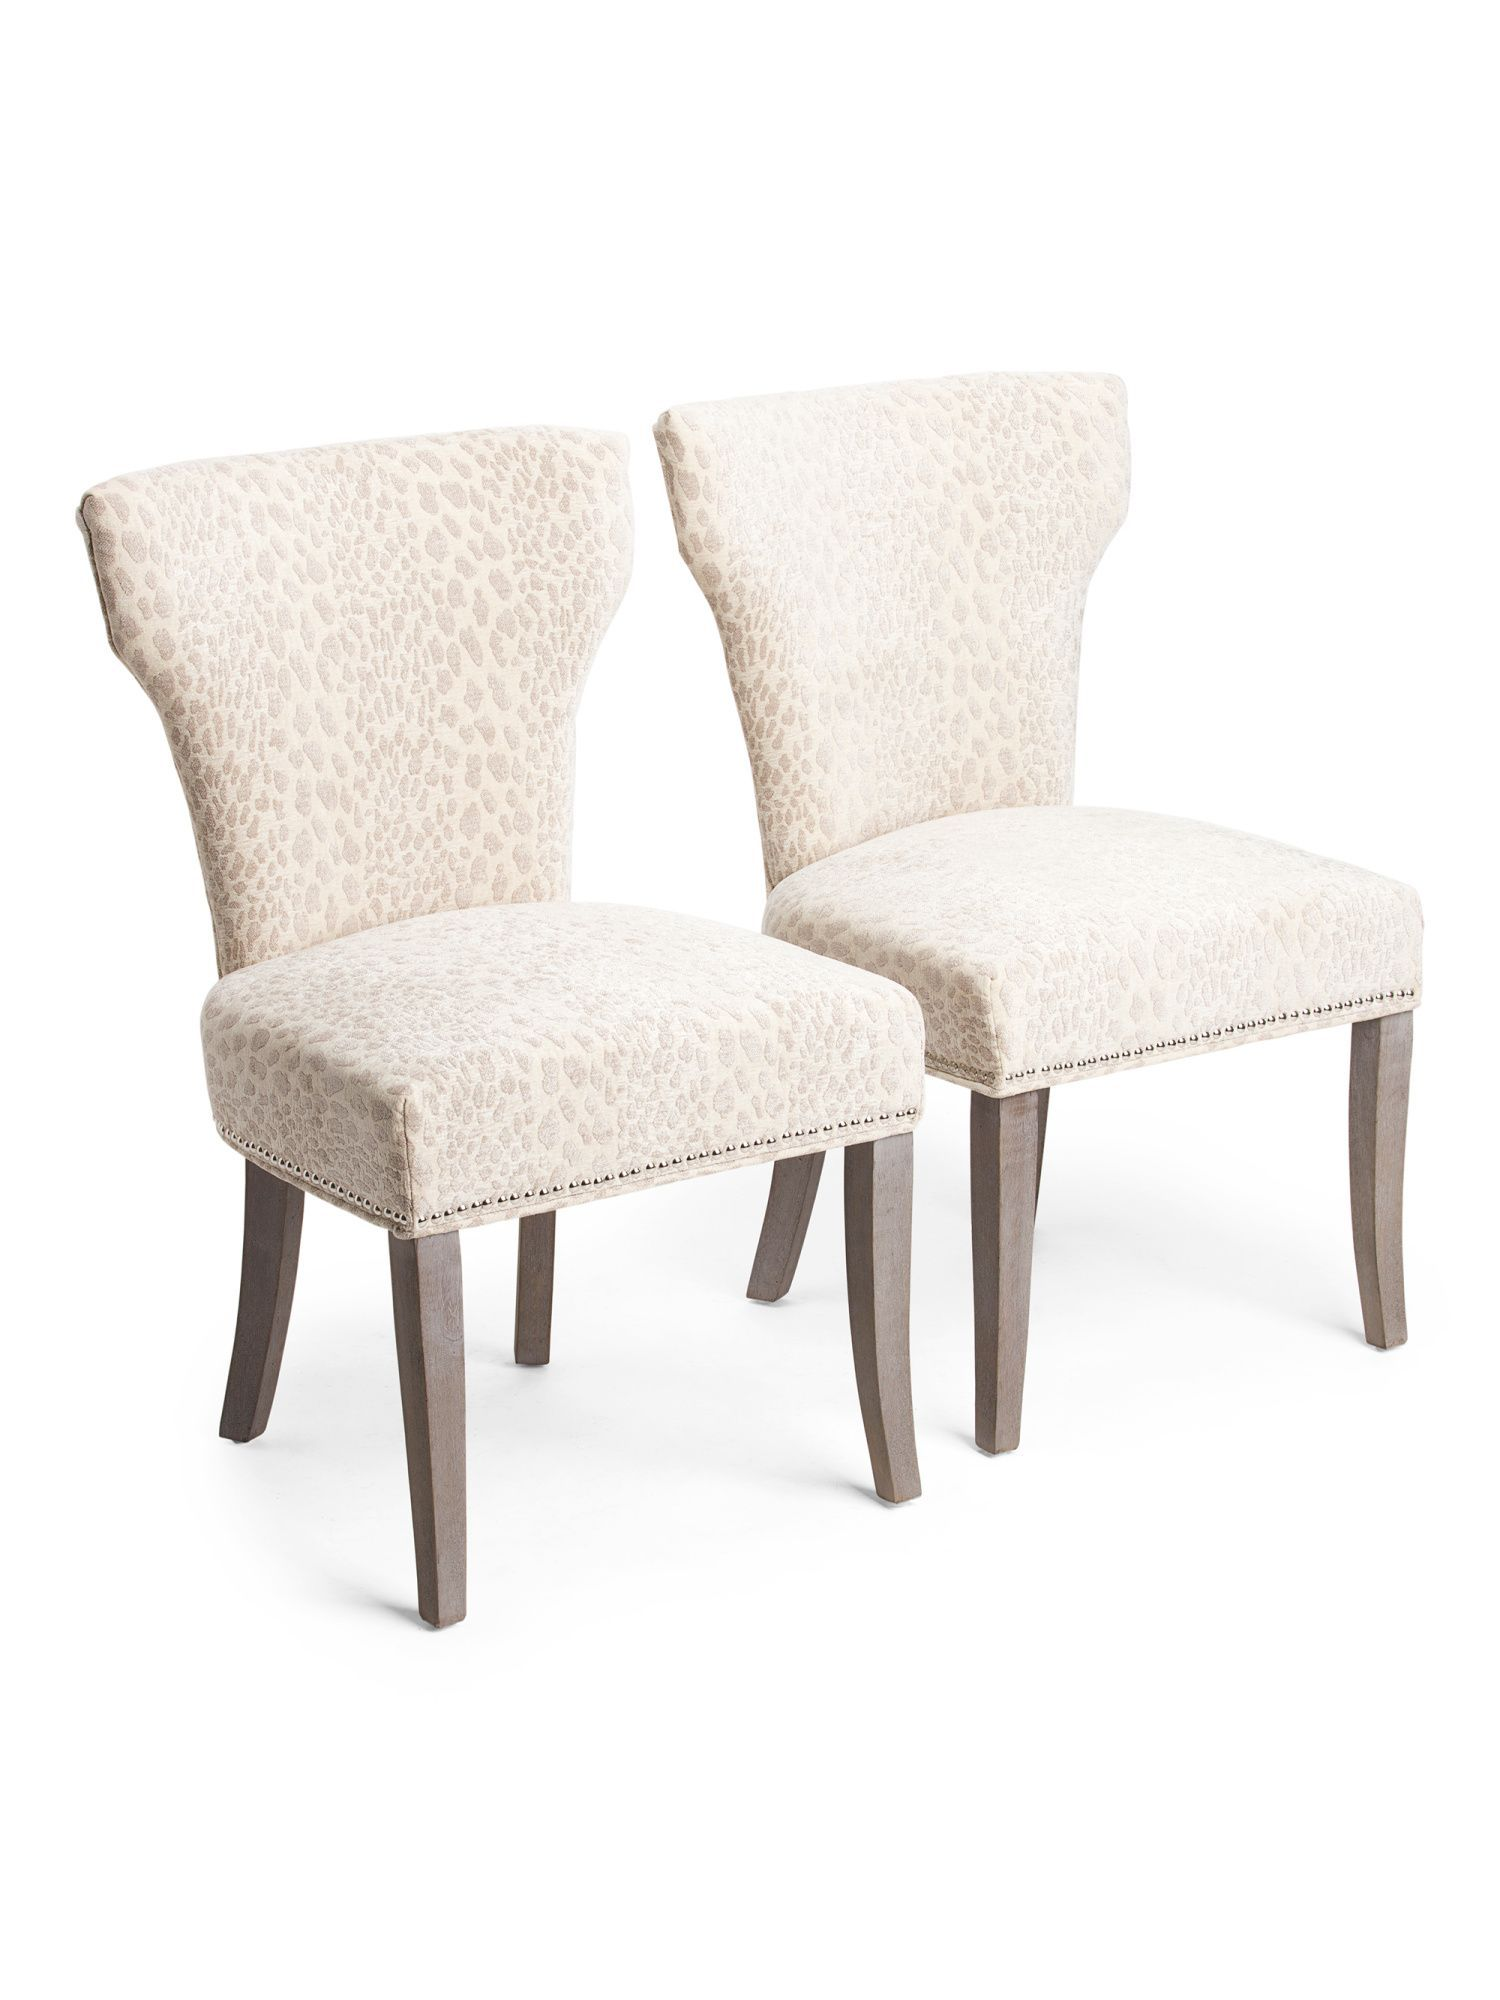 sofa accessories names dfs sofas corner fabric set of 2 bicci cheetah chairs products chair brand accent furniture home decor